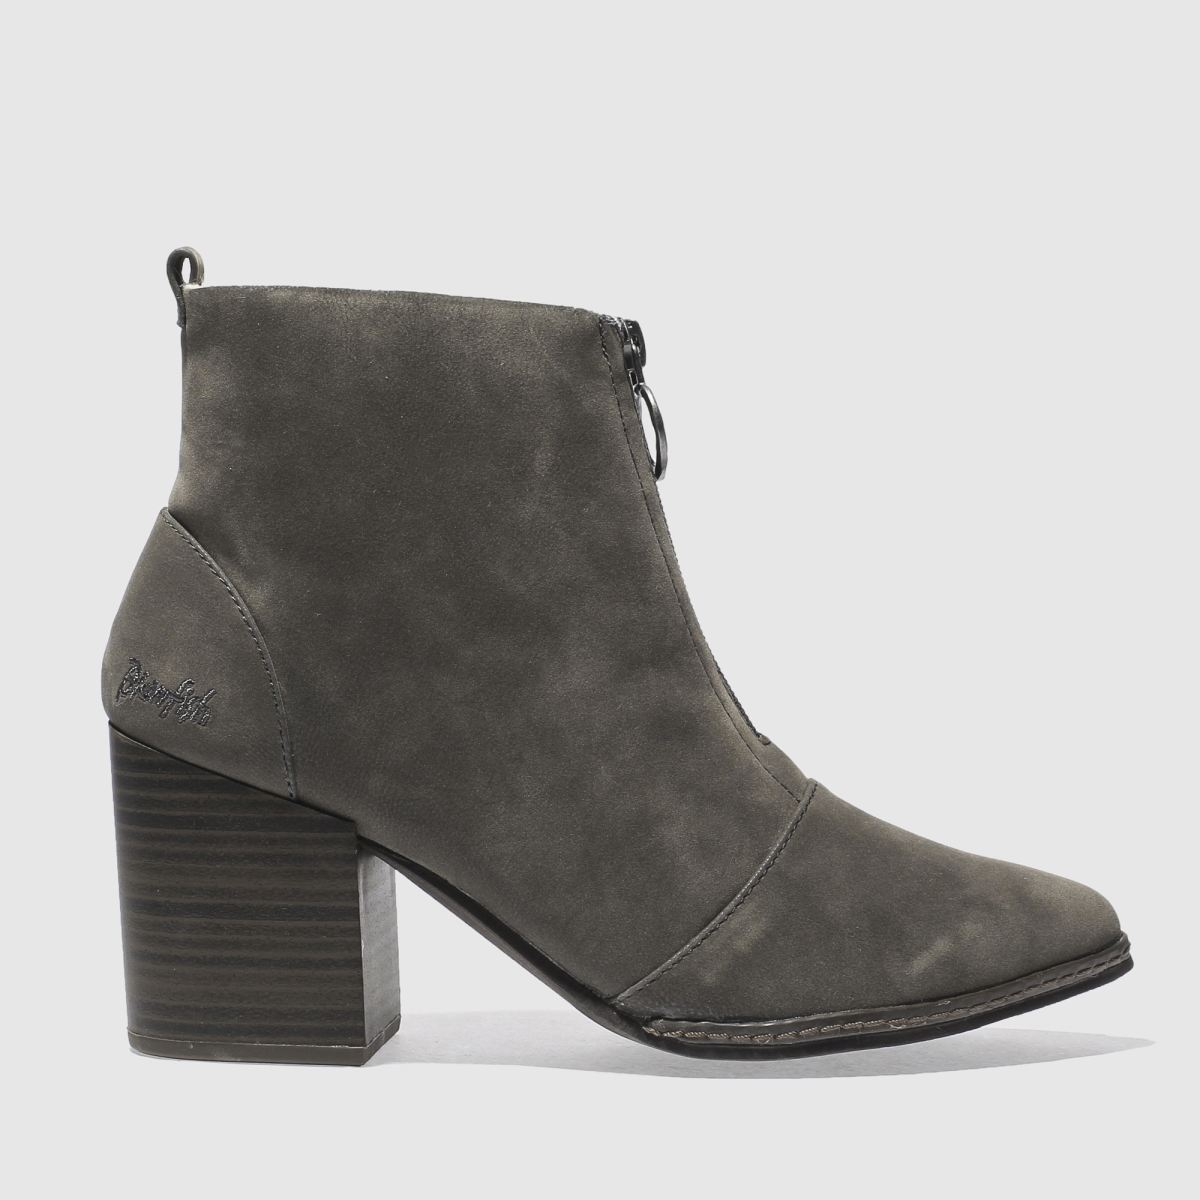 Blowfish Grey Payten Shearling Boots